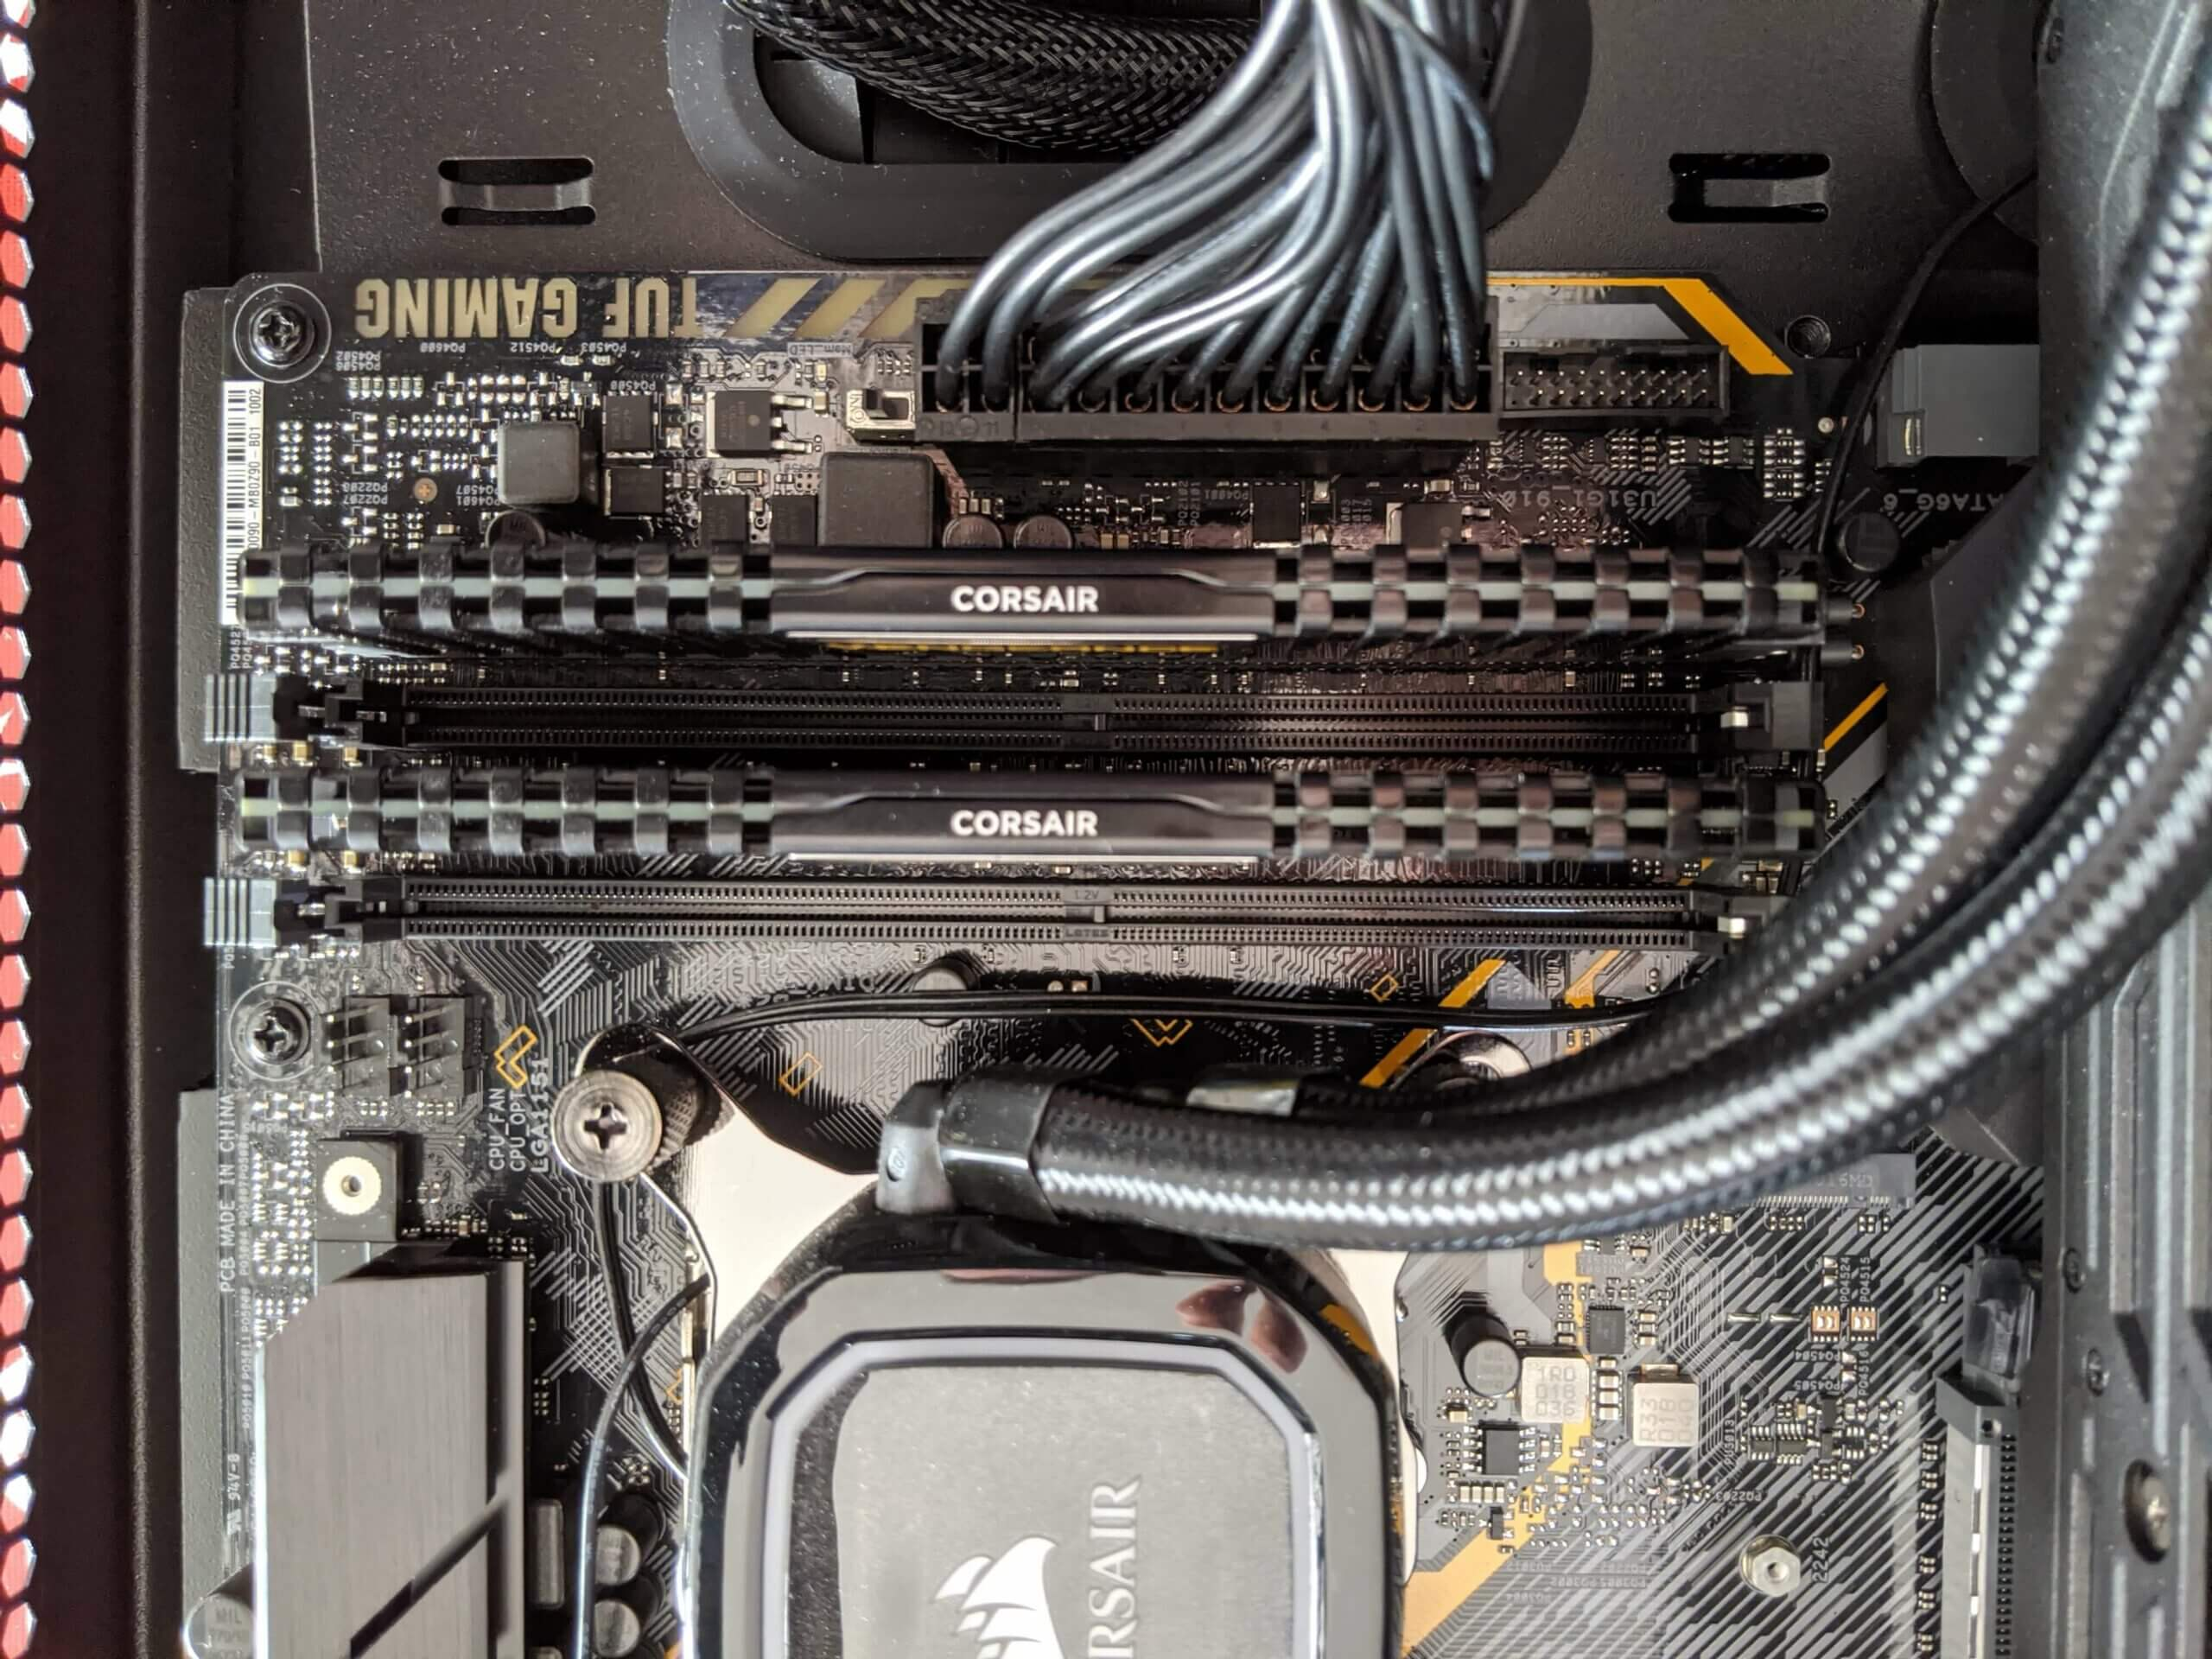 How to: Upgrading the RAM on my ASUS TUF Gaming Motherboard